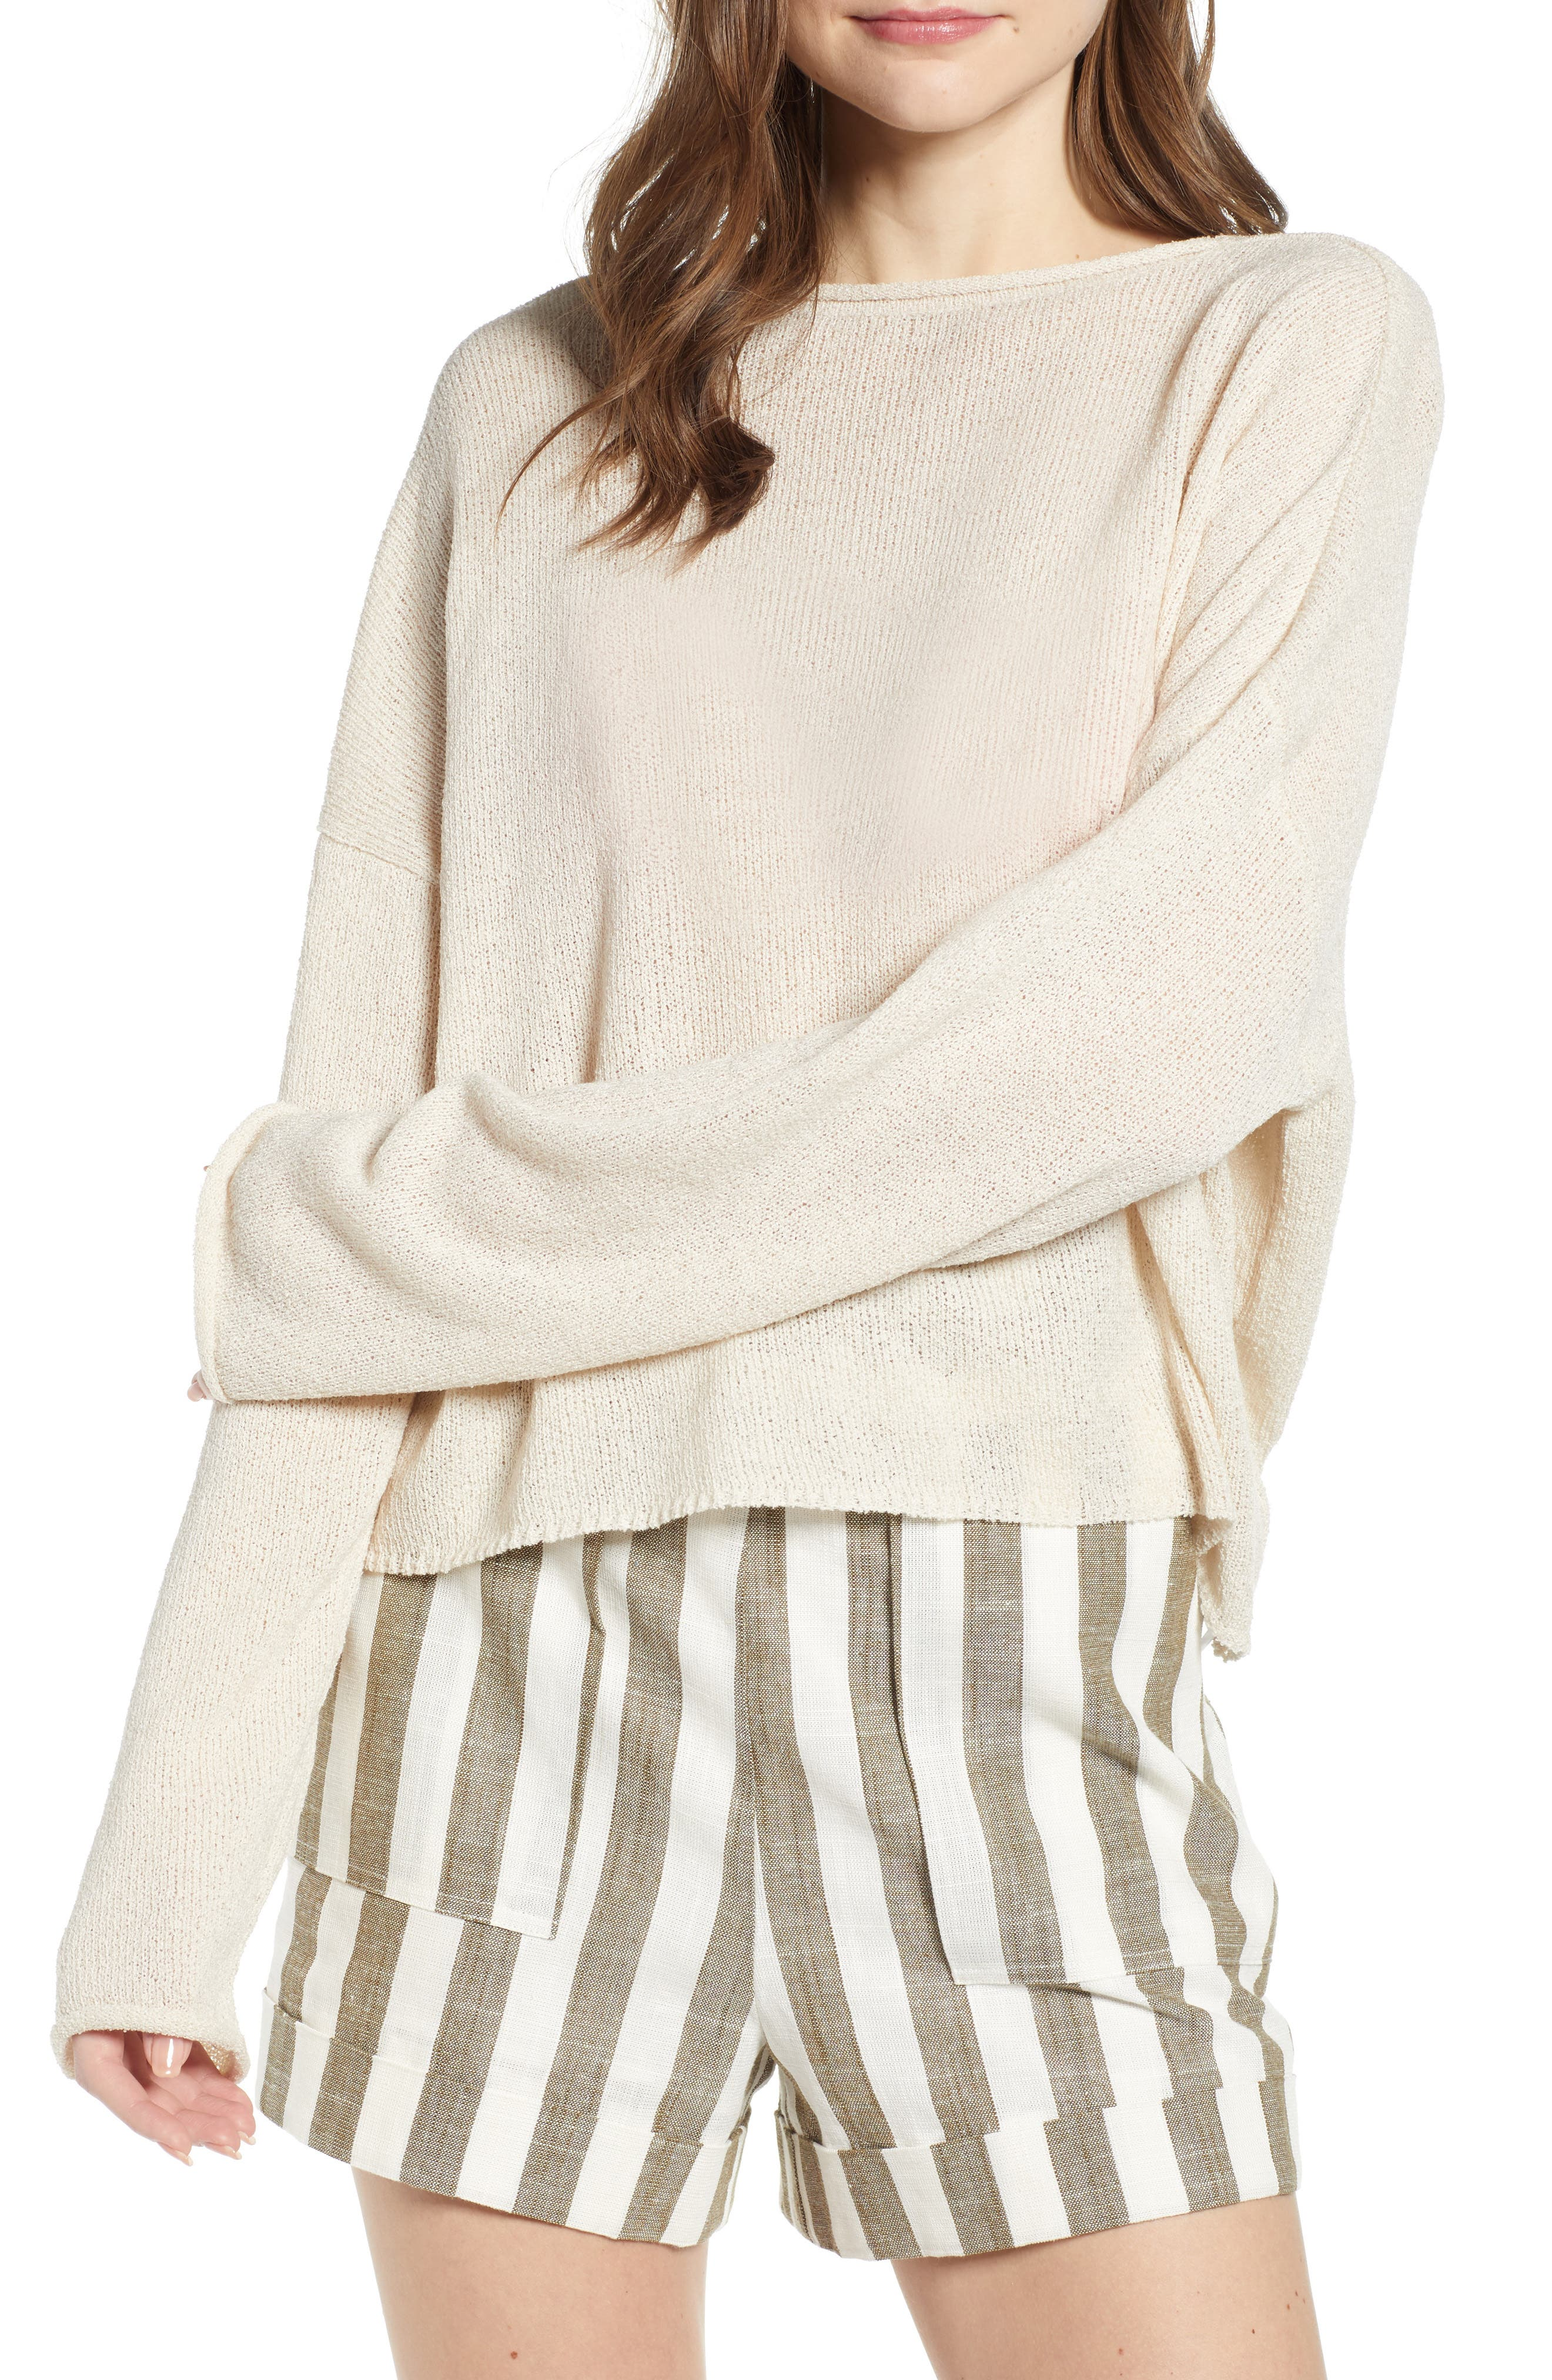 CHRISELLE LIM COLLECTION, Chriselle Lim Sabine Front/Back Sweater, Alternate thumbnail 5, color, NATURAL